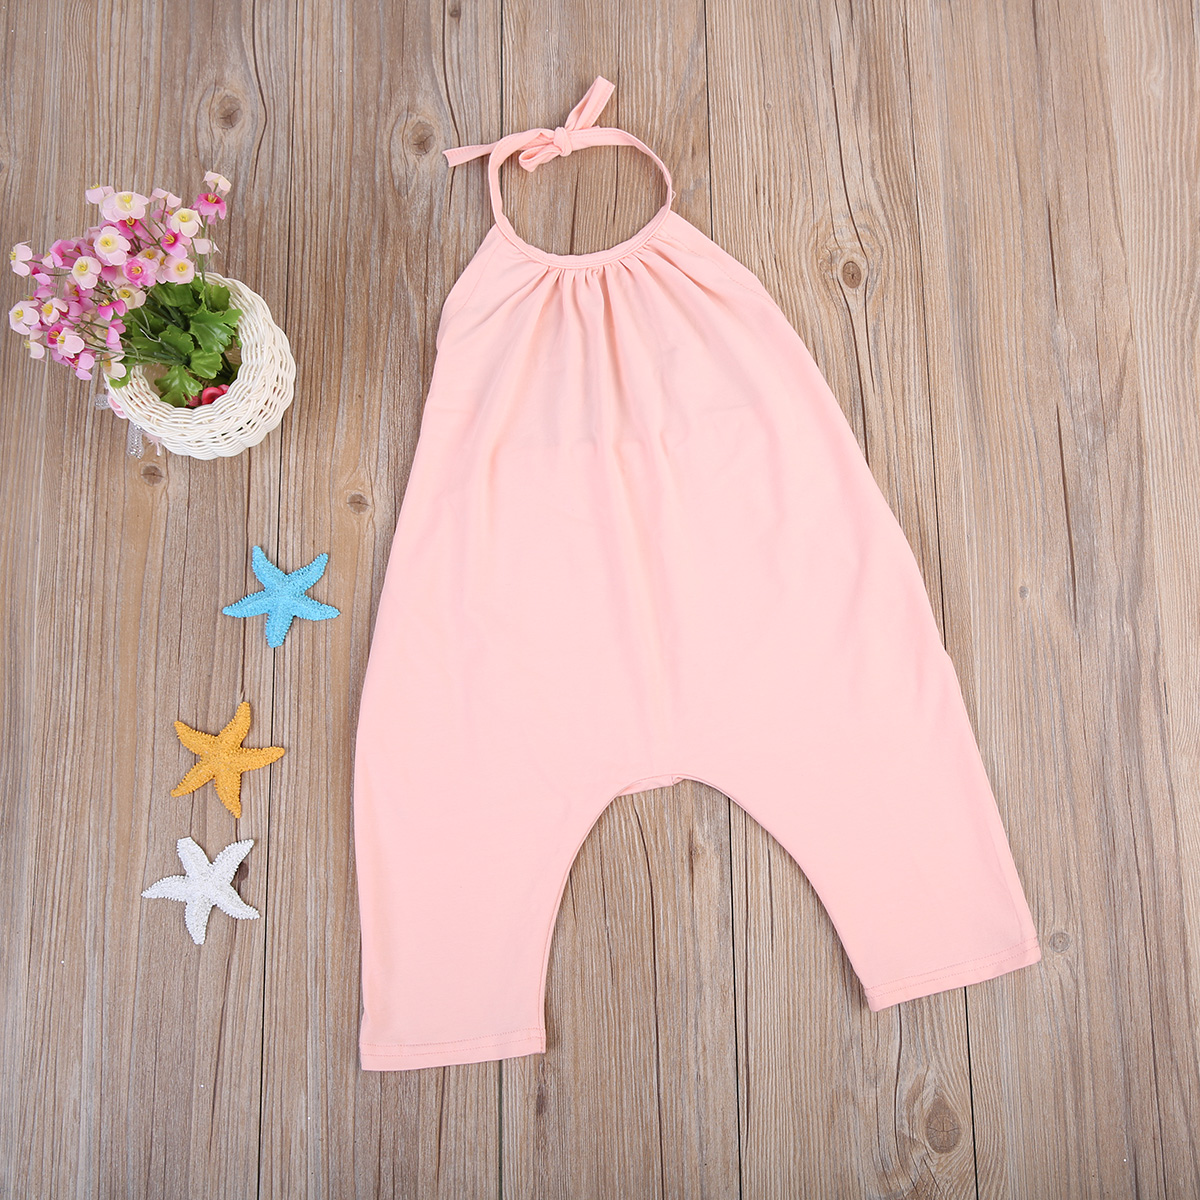 2017-Summer-Kids-Baby-Girls-Strap-Cotton-Romper-Jumpsuit-Harem-Trousers-Summer-Clothes-4